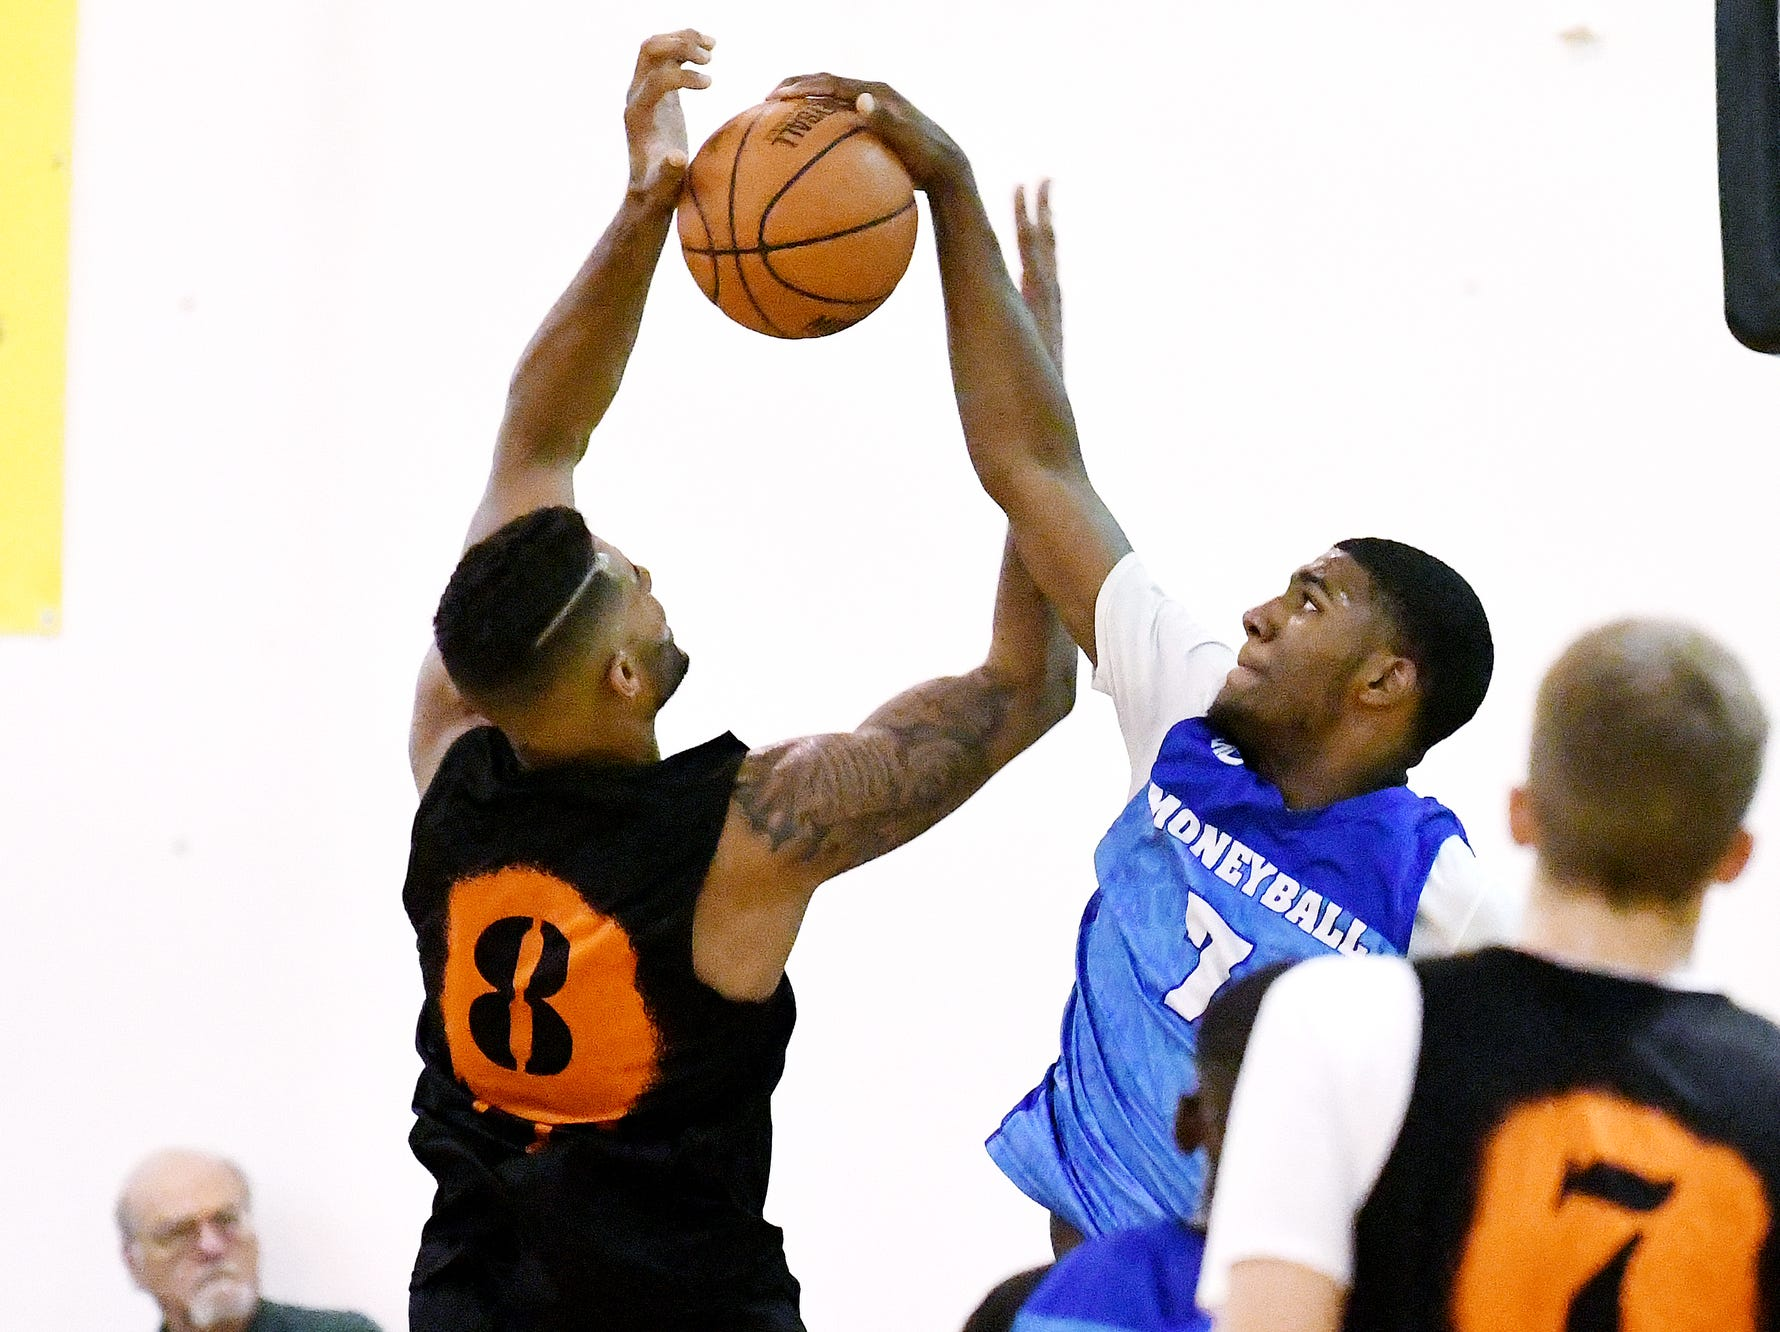 Team Definition's Aaron Henry, right, blocks a shot by Team Splatter's Devin Oliver on Thursday, Aug. 2, 2018, during the Moneyball Pro-Am summer basketball league championship game at Aim High in Dimondale. Team Definition won the game 99-83.